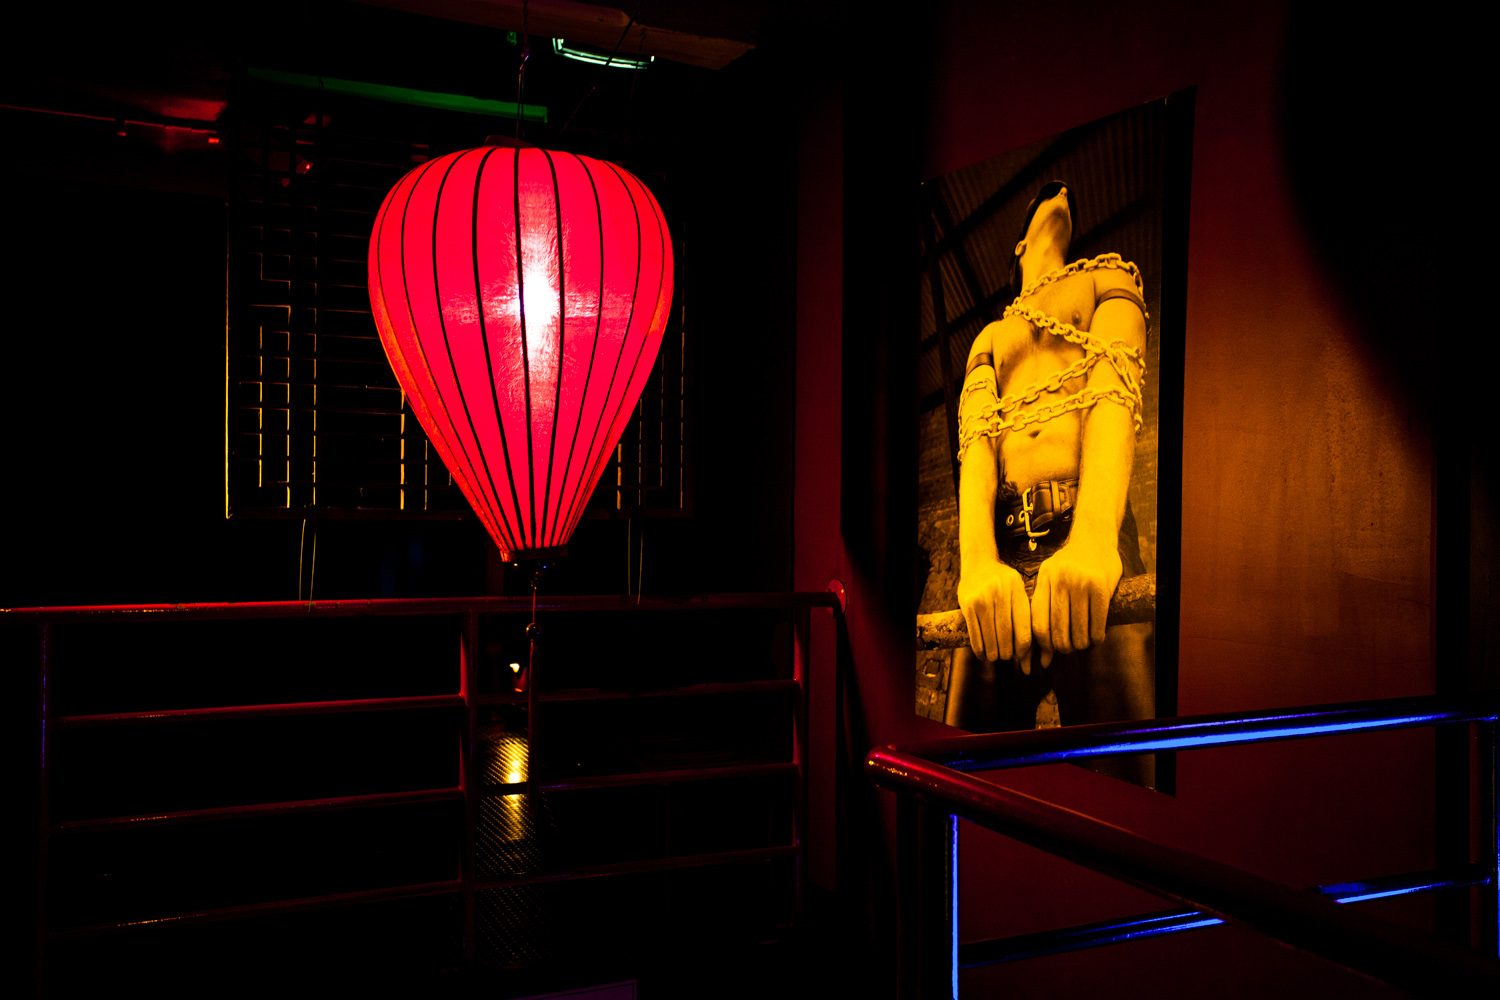 Our mood lanterns at the top of the stairs leading to level 2